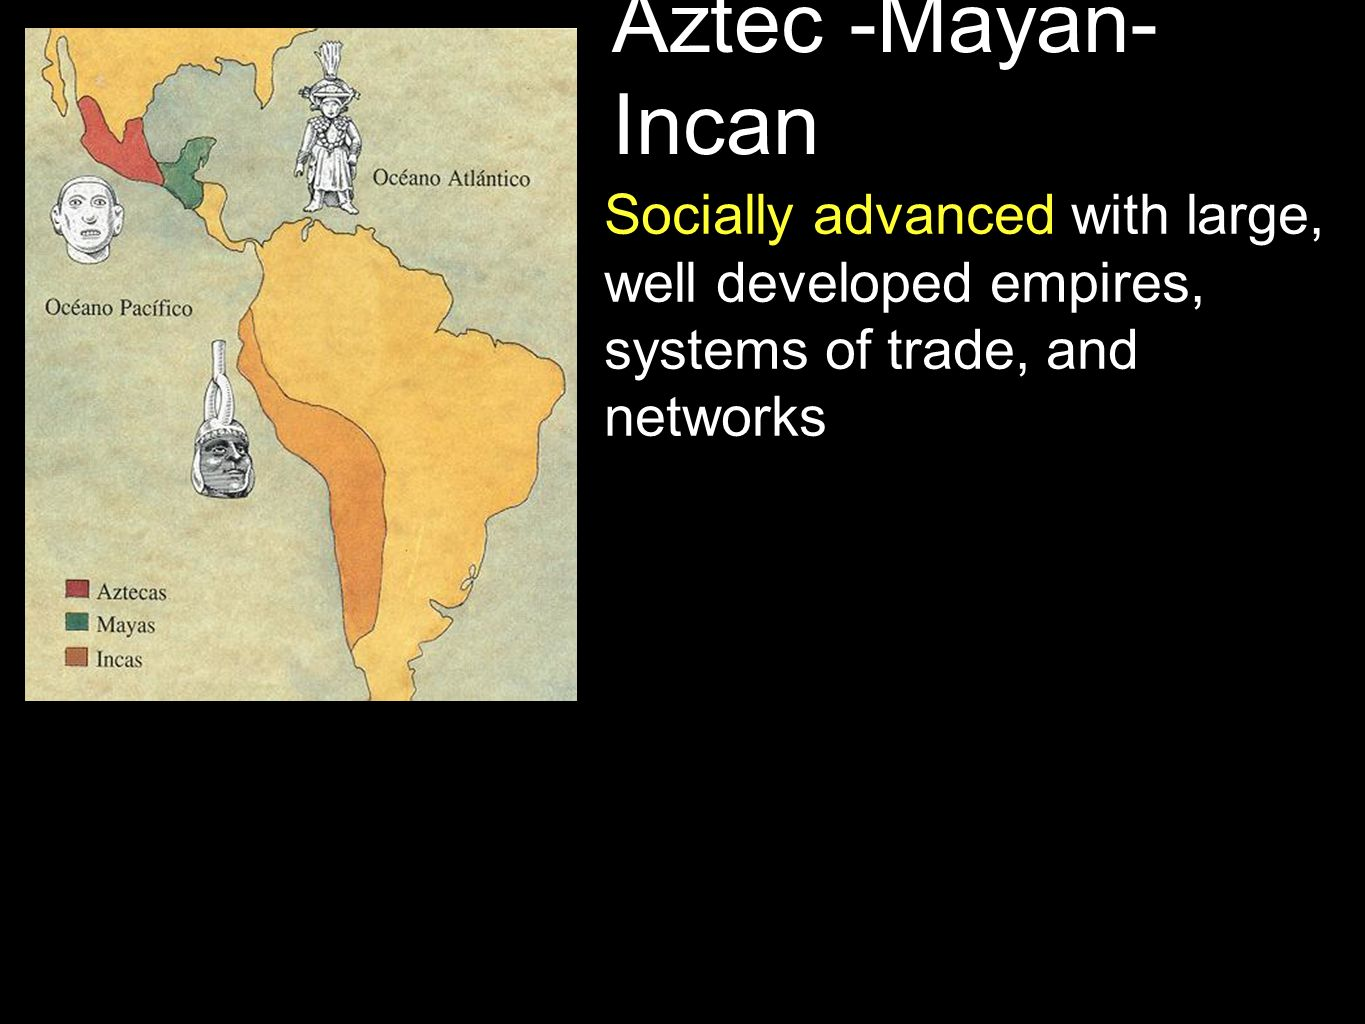 Aztec -Mayan- Incan Agriculturally advanced with extensive networks of food production They invented corn - they cross bred grasses until they created corn...no one in Europe at corn before Columbus.